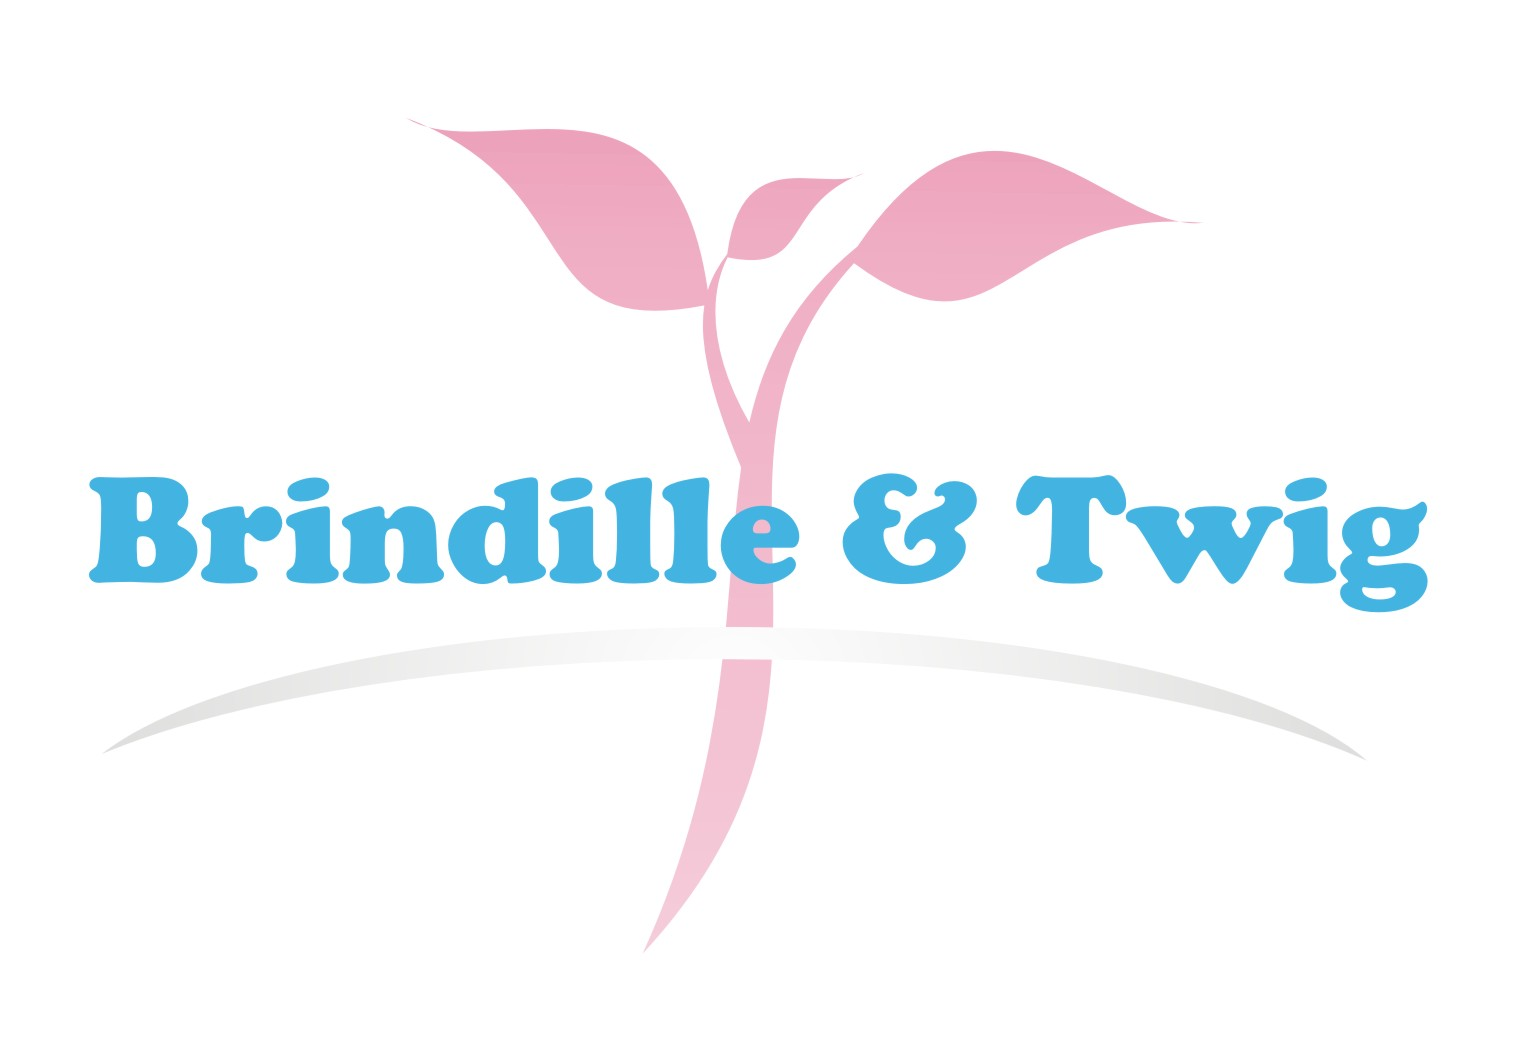 Logo Design by Gaber Barabaraberebere - Entry No. 9 in the Logo Design Contest Logo Design for Brindille & Twig.